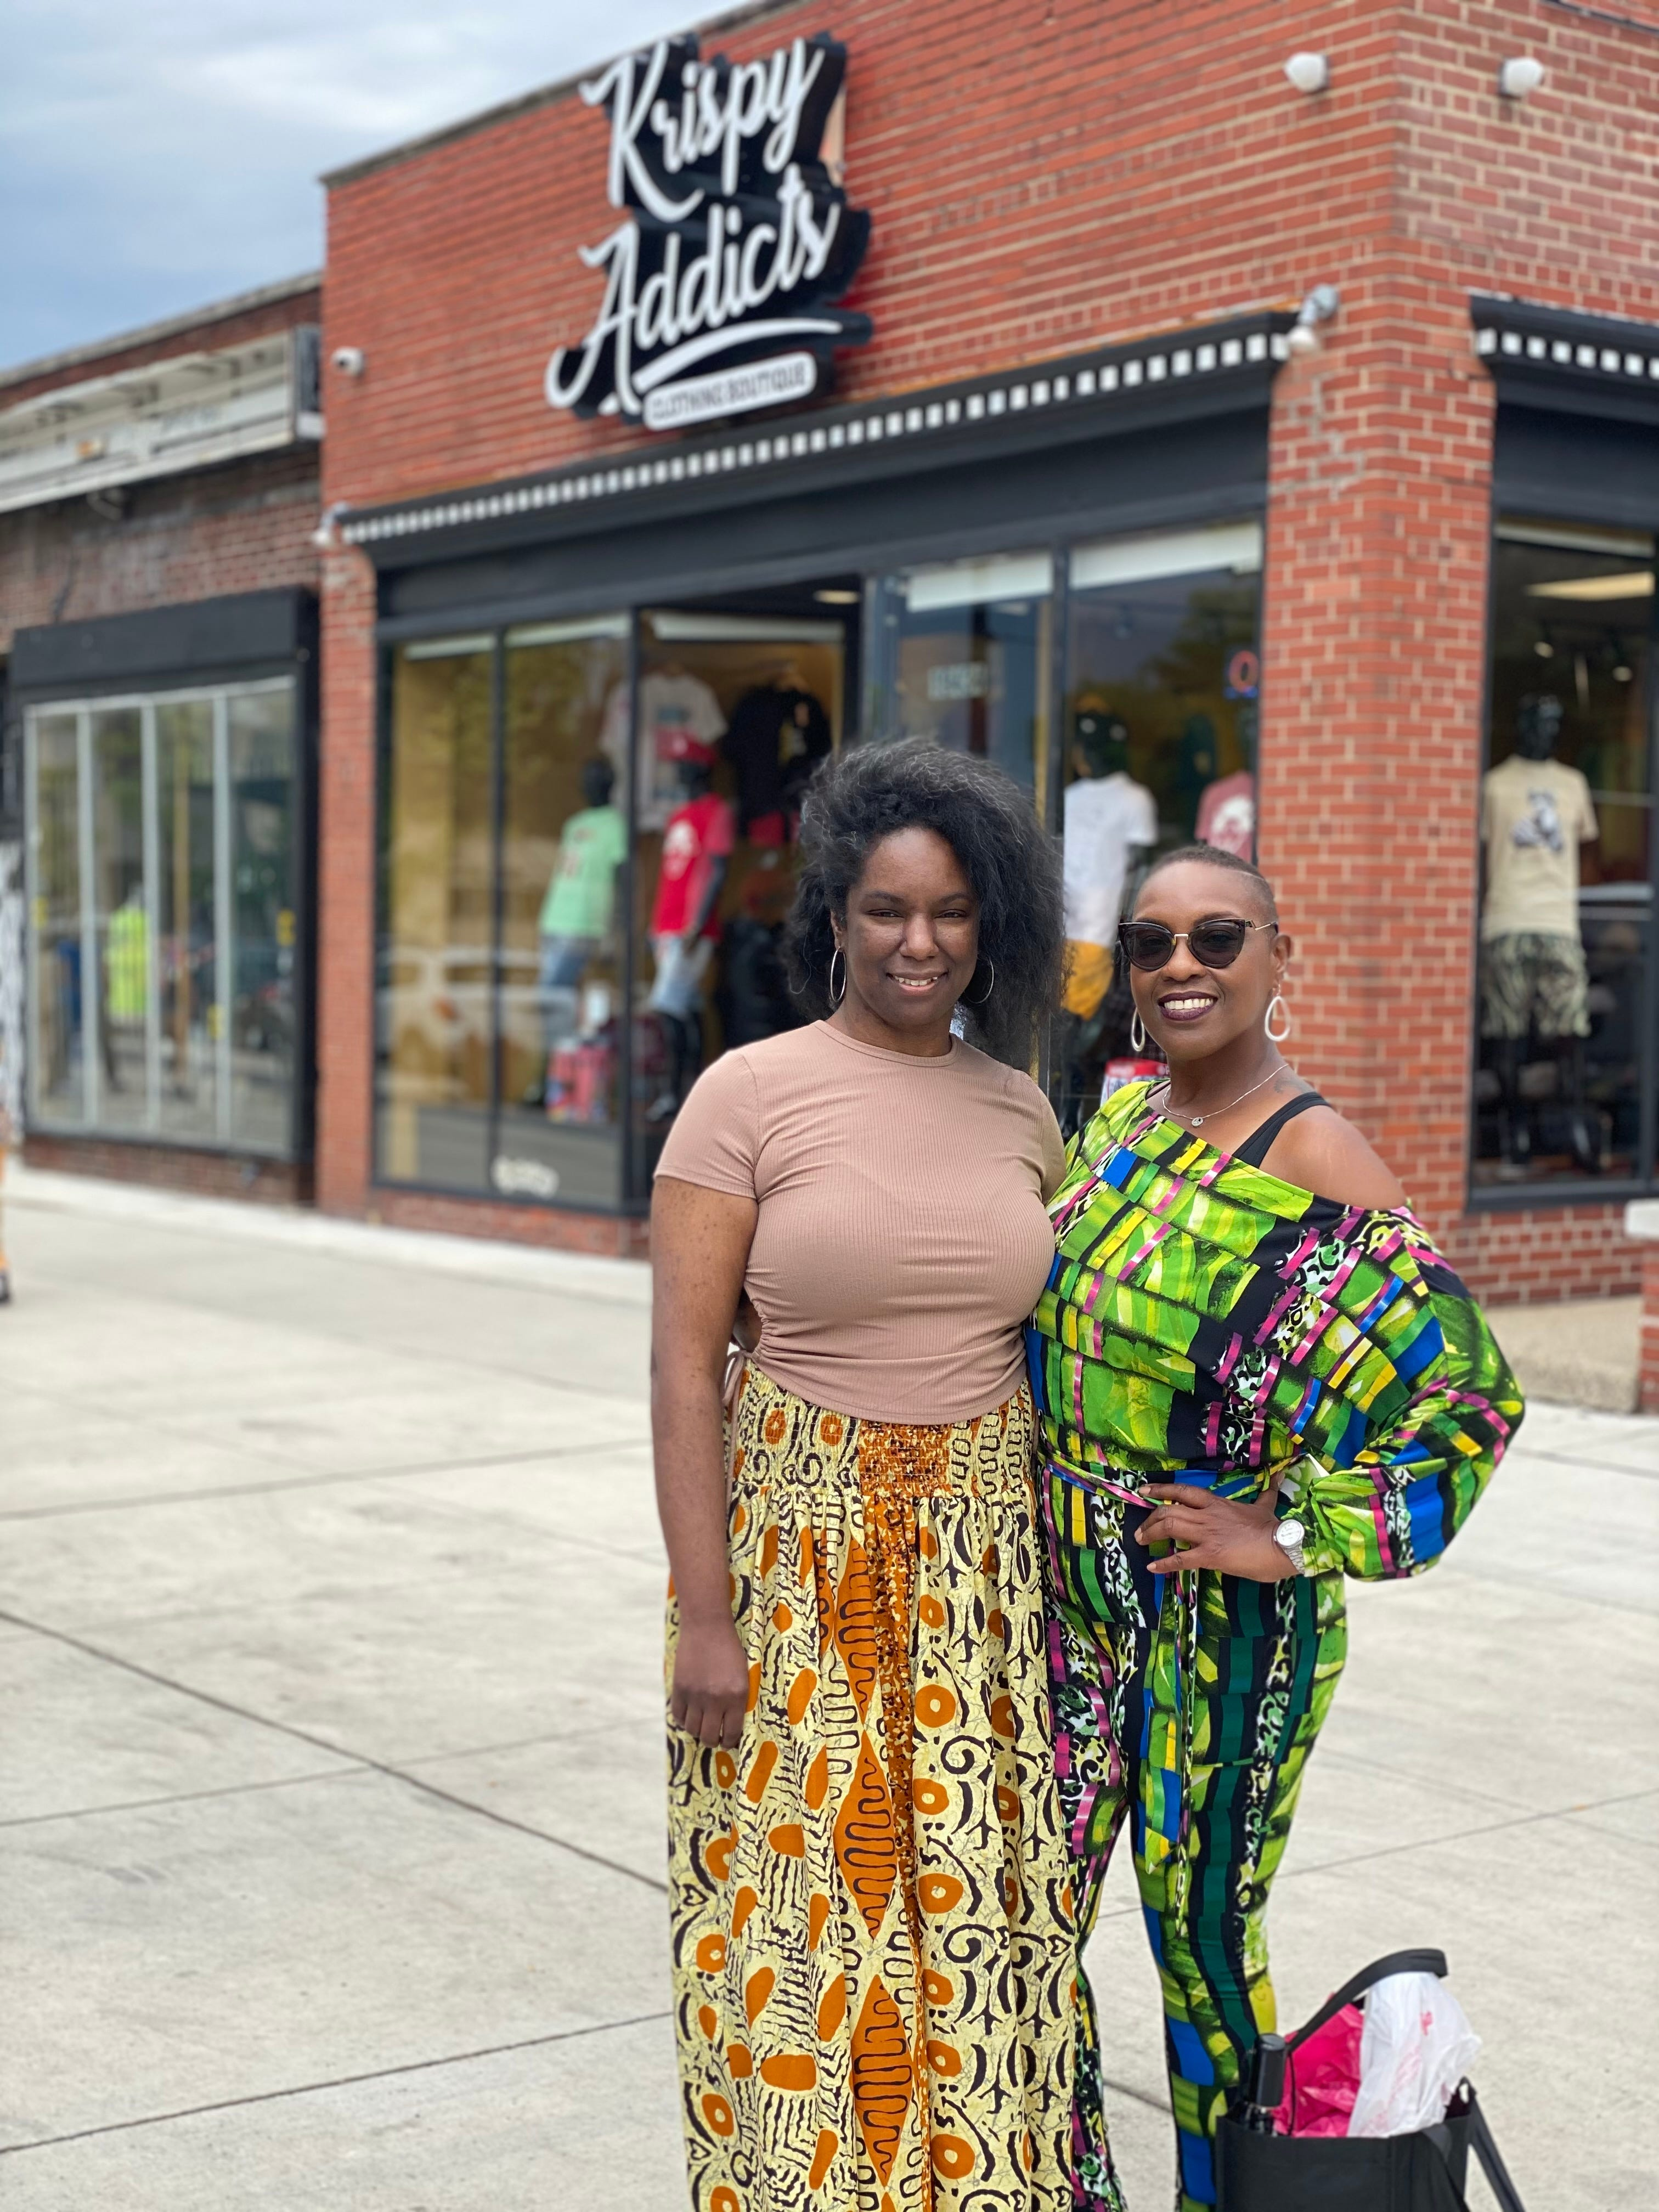 Sisters, Teresa Johnson, 41 on the left and Kalimah Johnson, 52, on the right poses while shopping on the Avenue of Fashion in Detroit for the Juneteenth Jubilee.